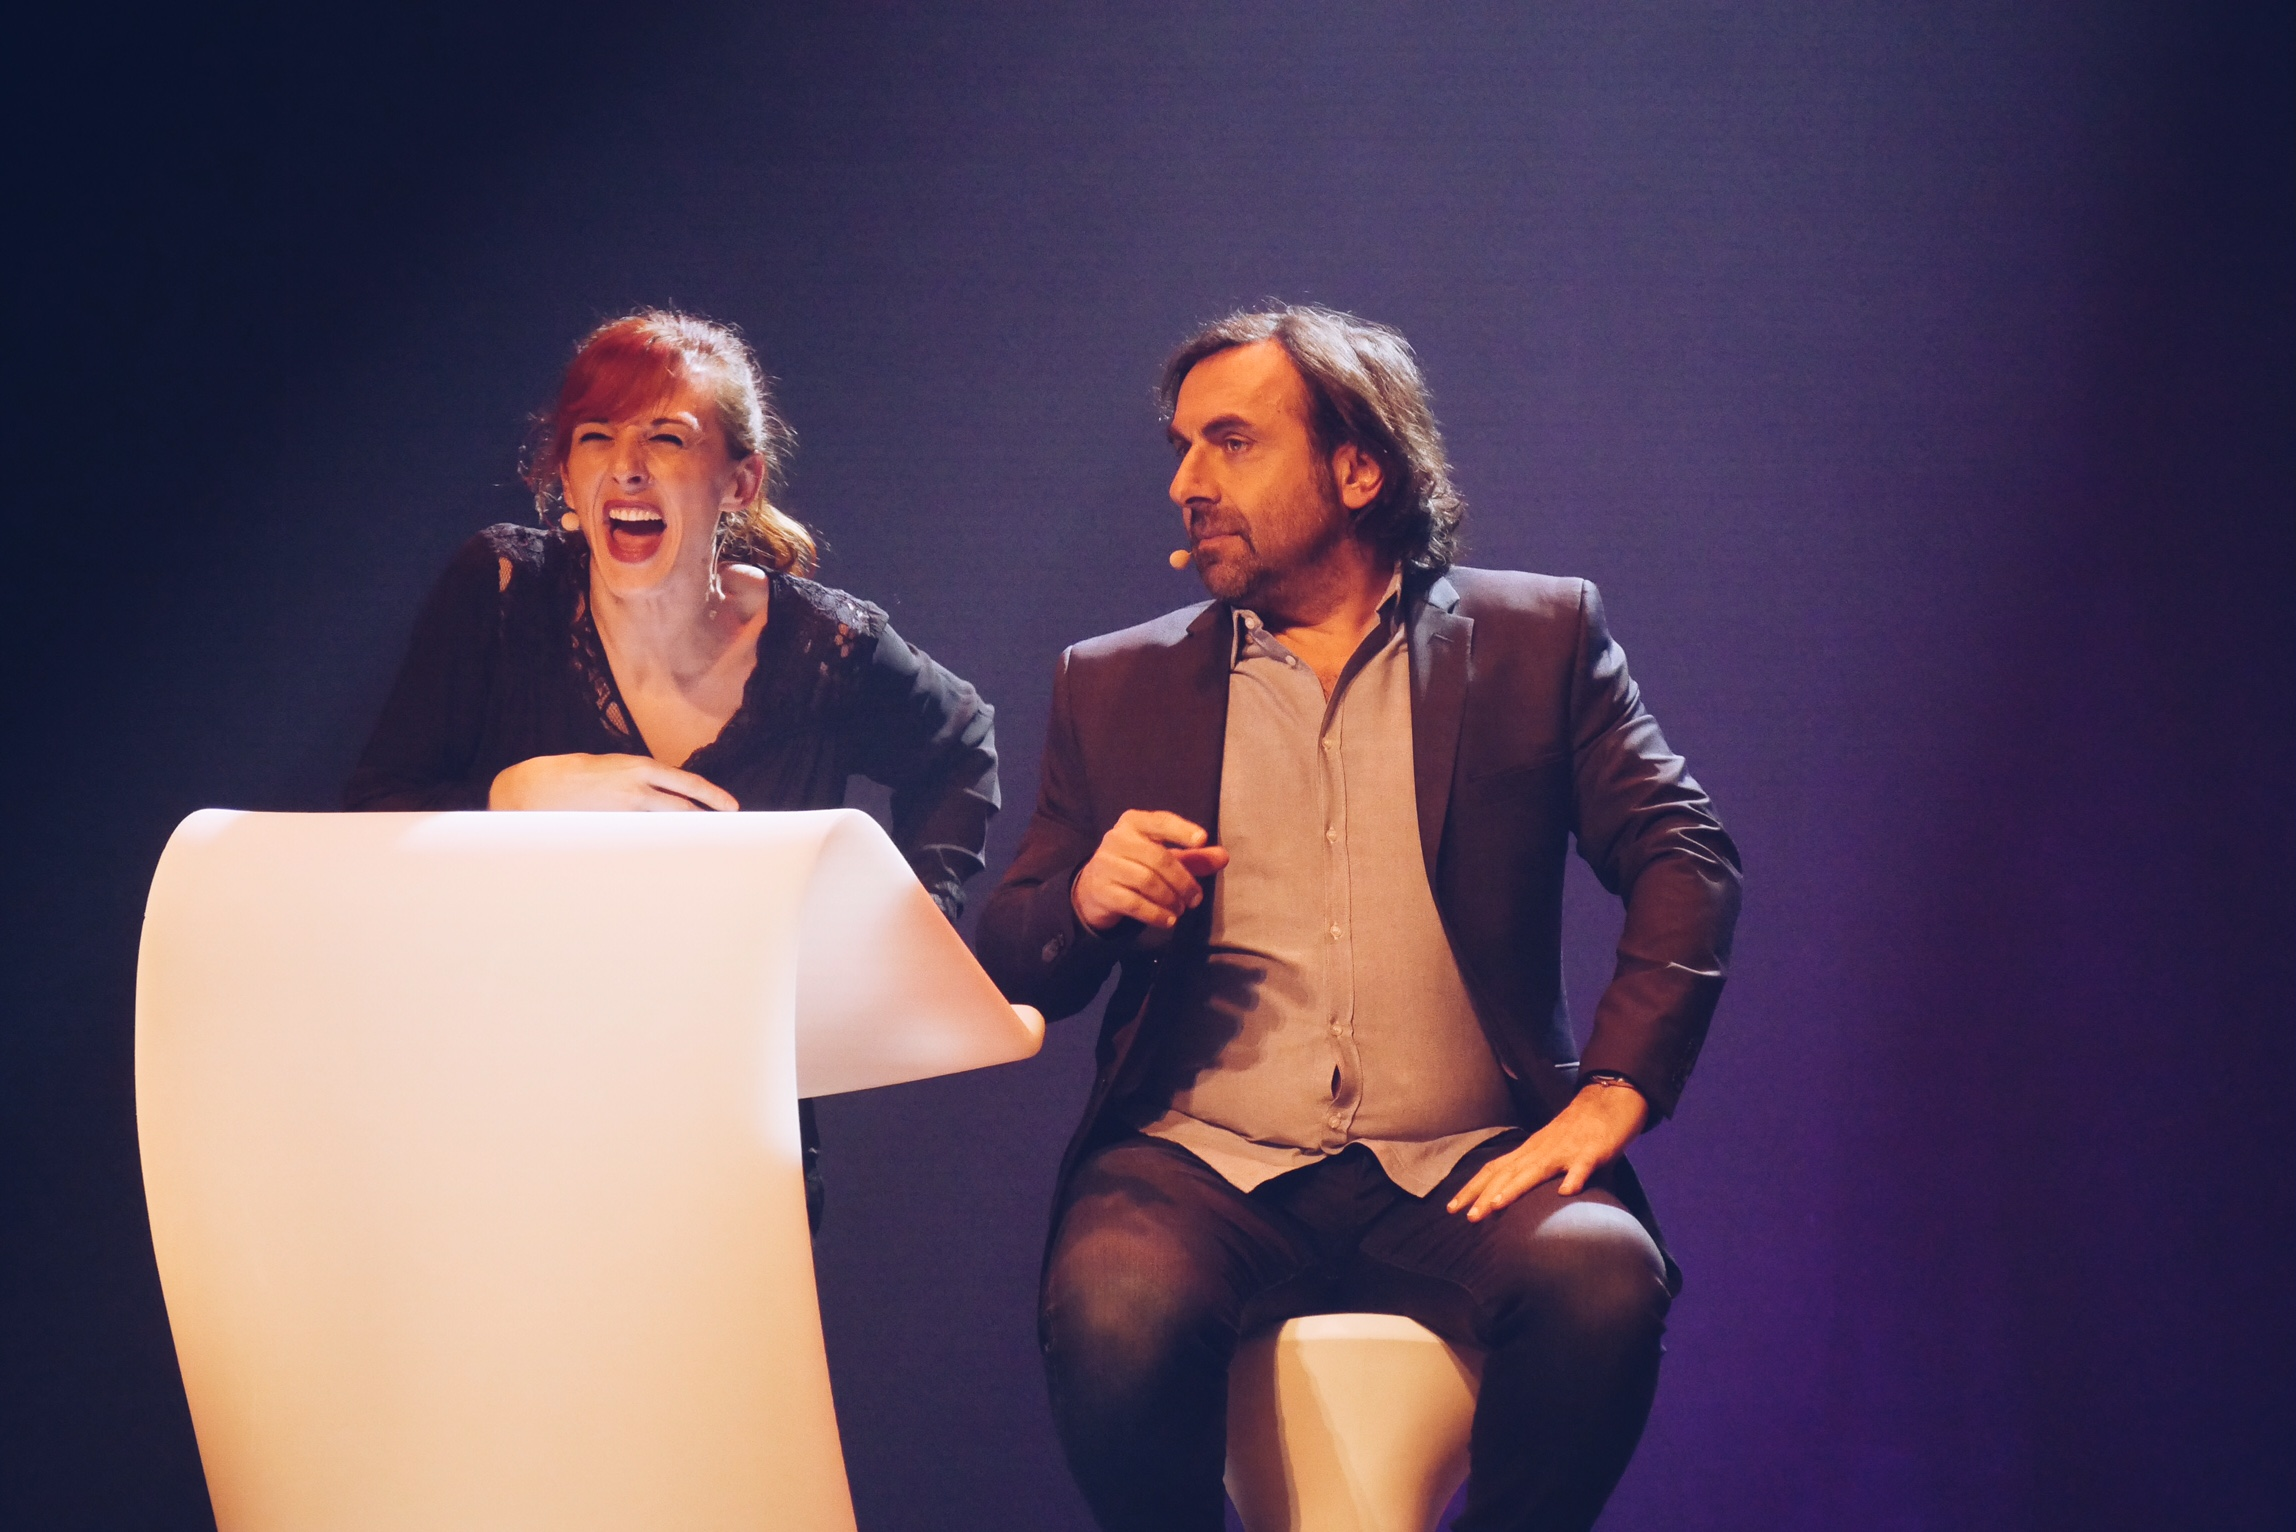 Le-Grand-Showtime-Julie-Muller-et-André-Manoukian-improvisation-Festival-d-Humour-de-Paris-Bobino-photo-usofparis-blog